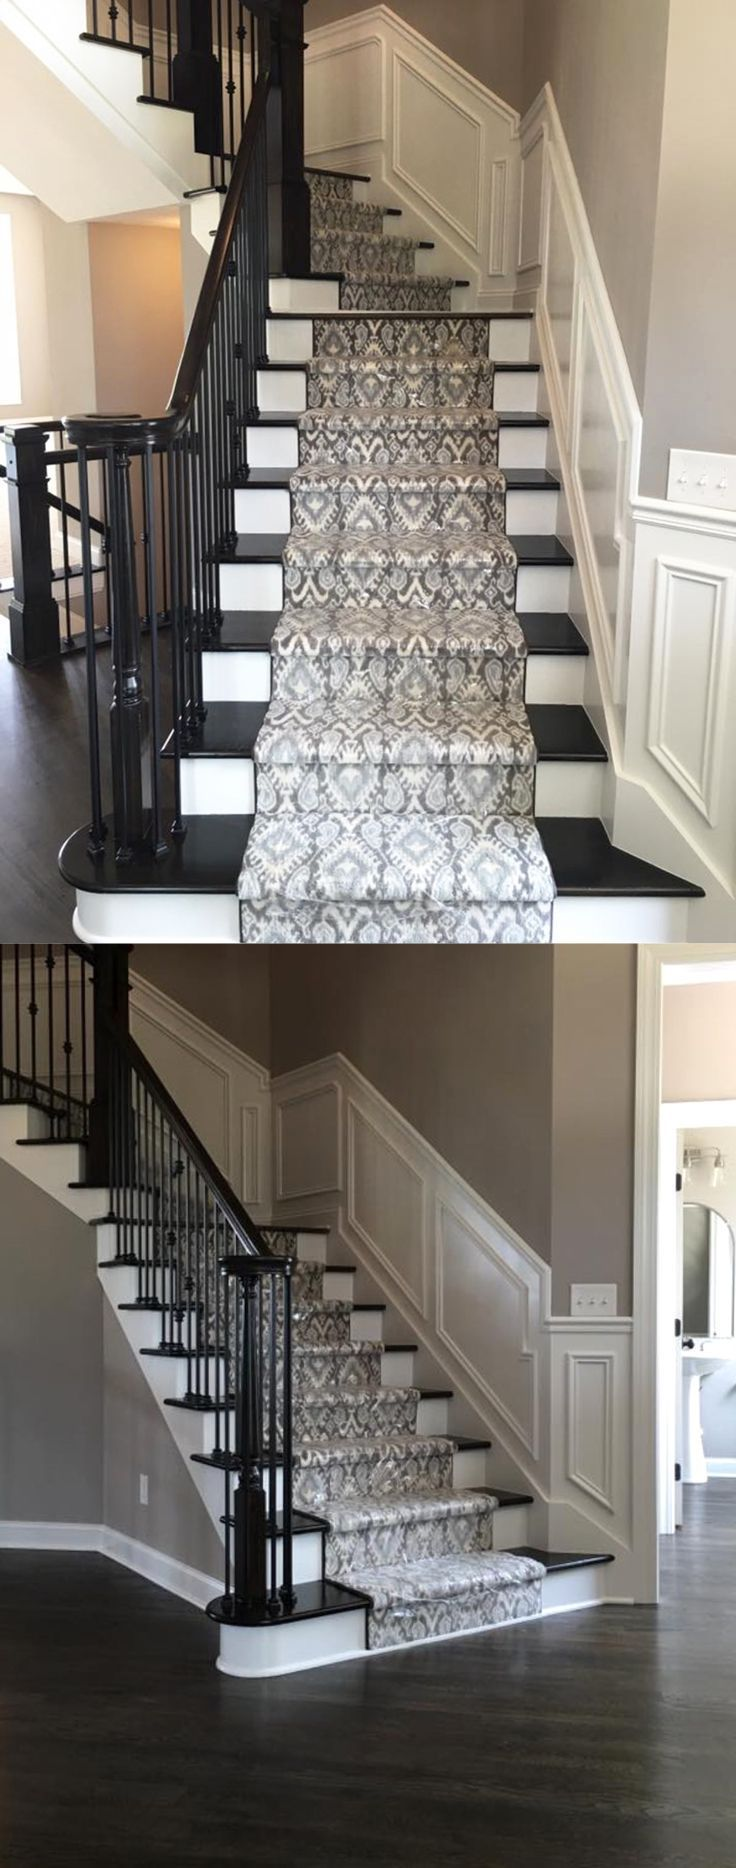 Beautiful Patterned Stair Runner On Dark Stained Stairs